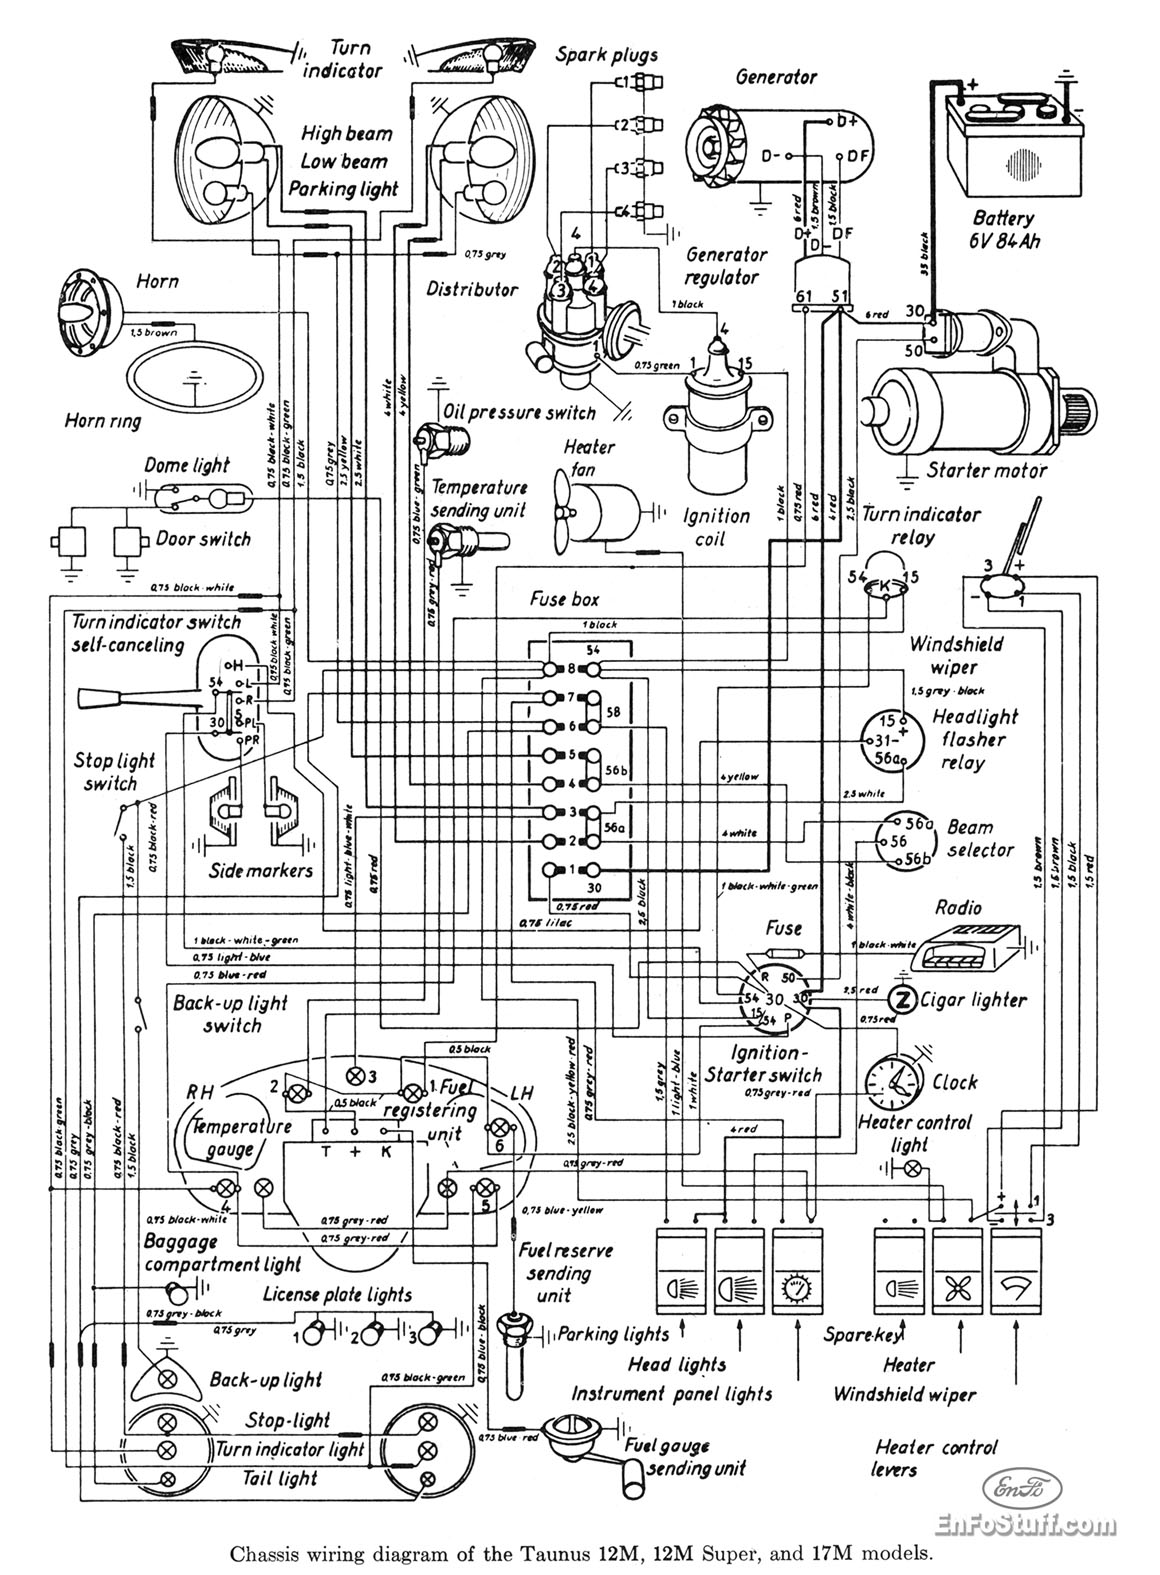 Wiring Diagram For Taunus 12m Super And 17m Models Diagrams Click